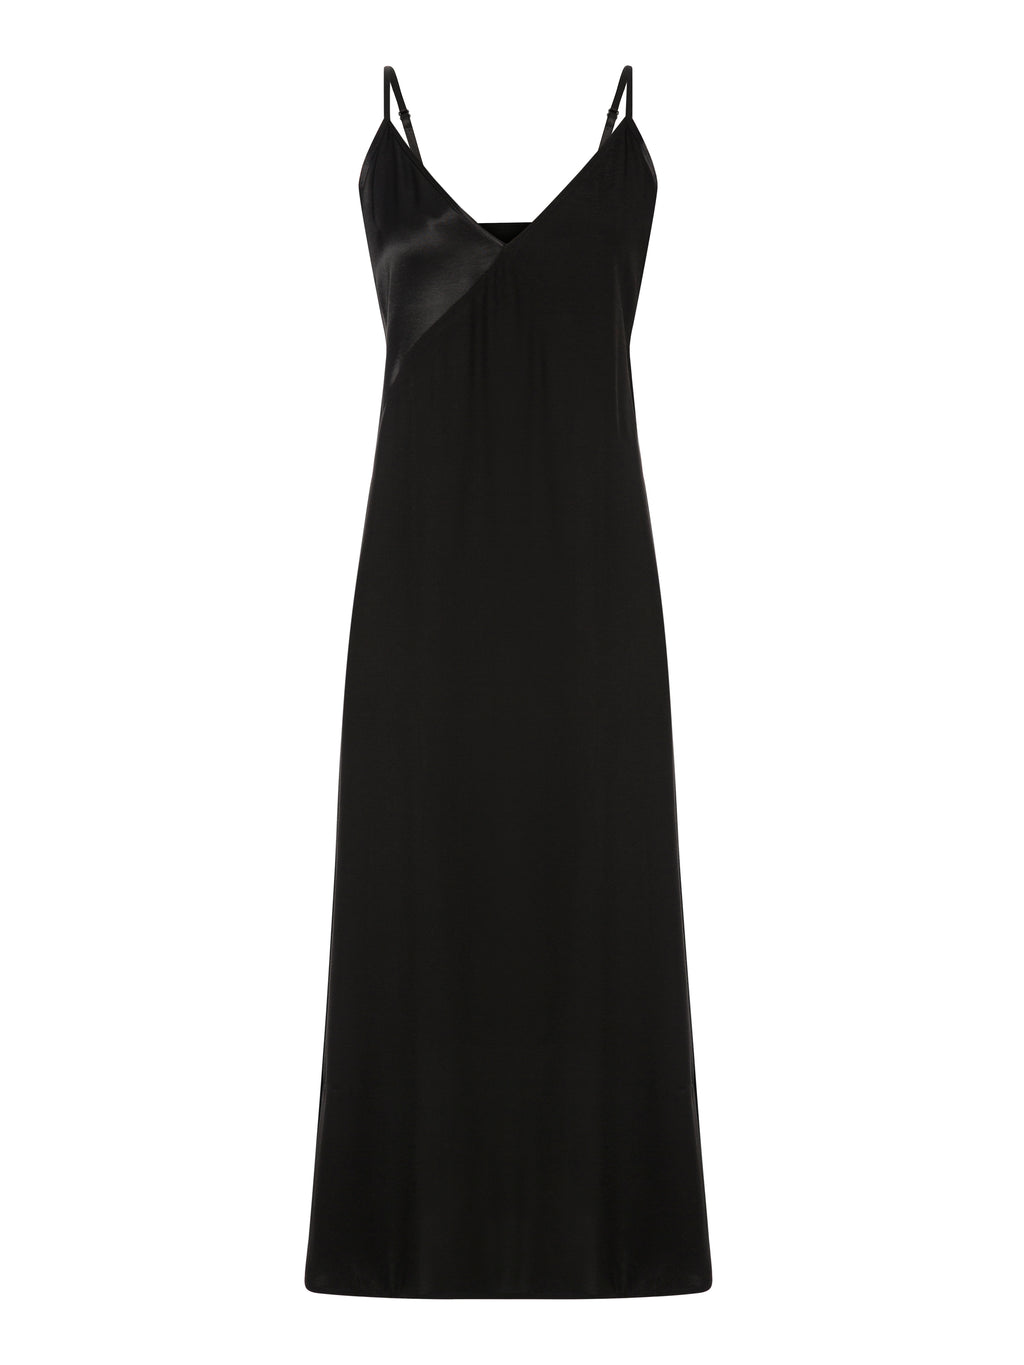 Mirimalist Slip Dress